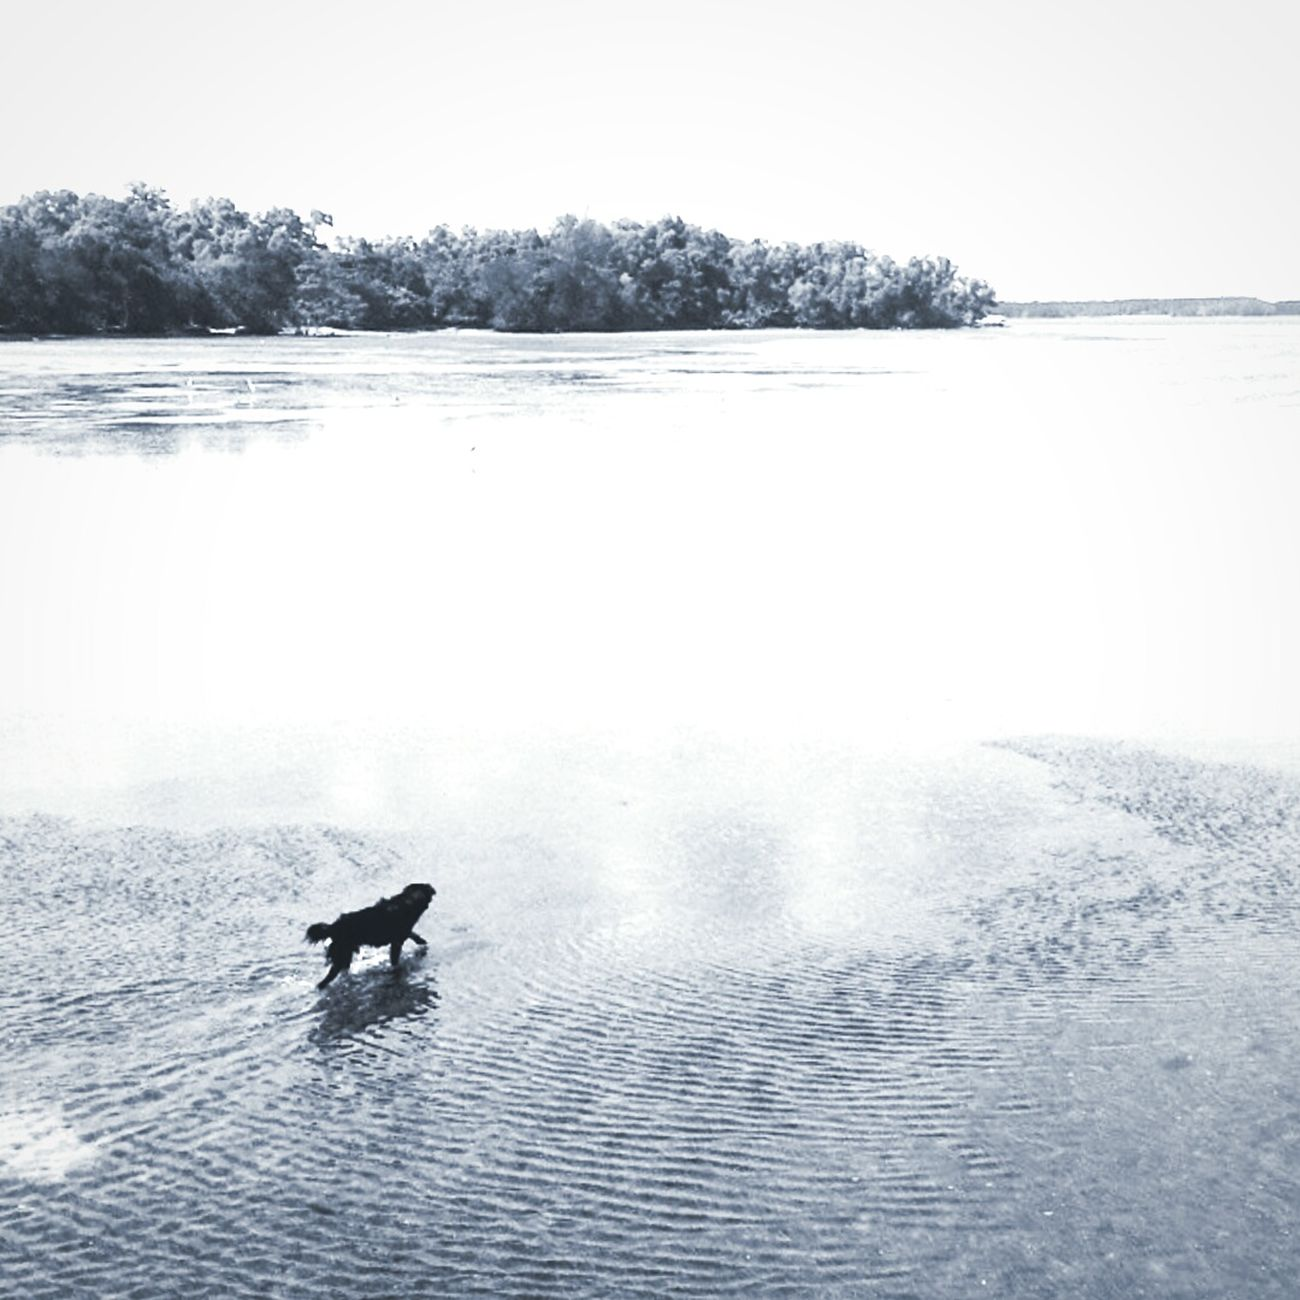 Lonely soul Singapore Monochrome Pulauubin Chekjawa Adventure Dogslife